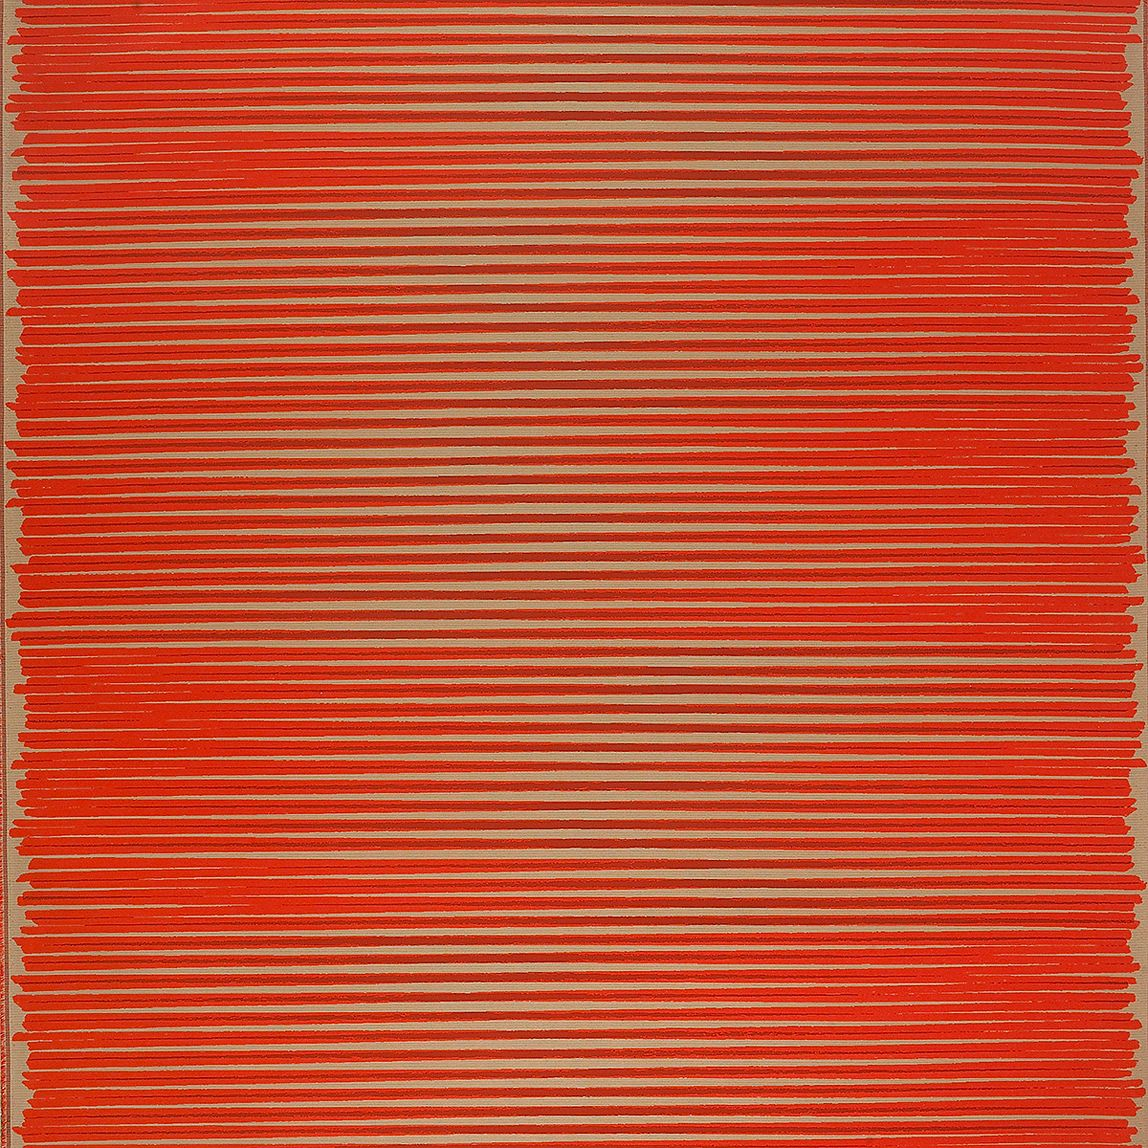 Painting Strokes Vermilion Swatch